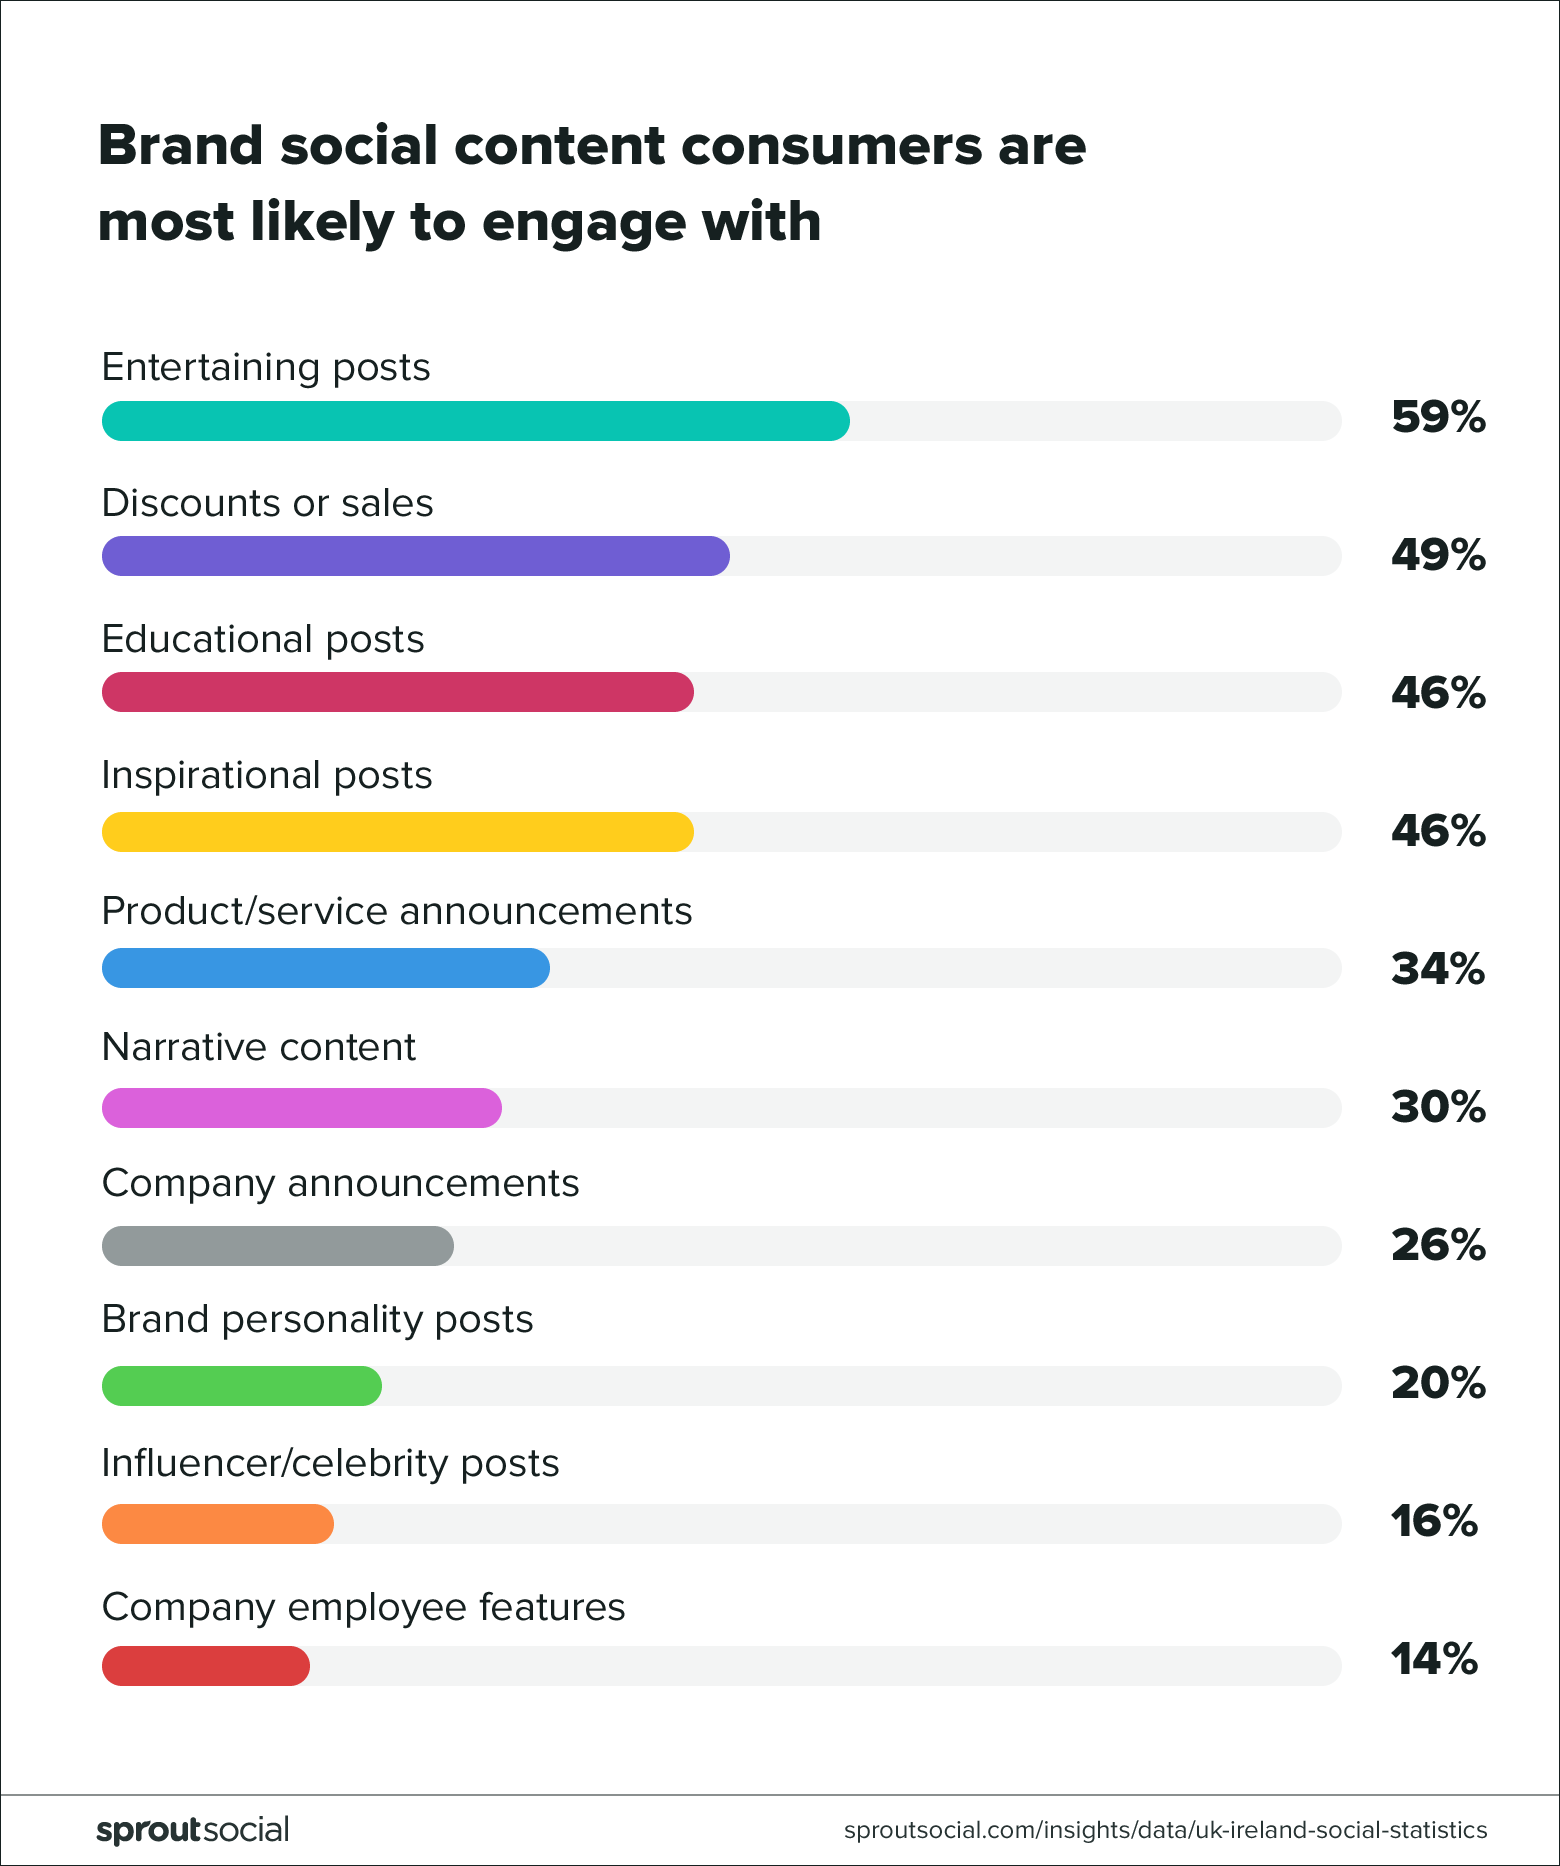 Brand social content consumers are most likely to engage with